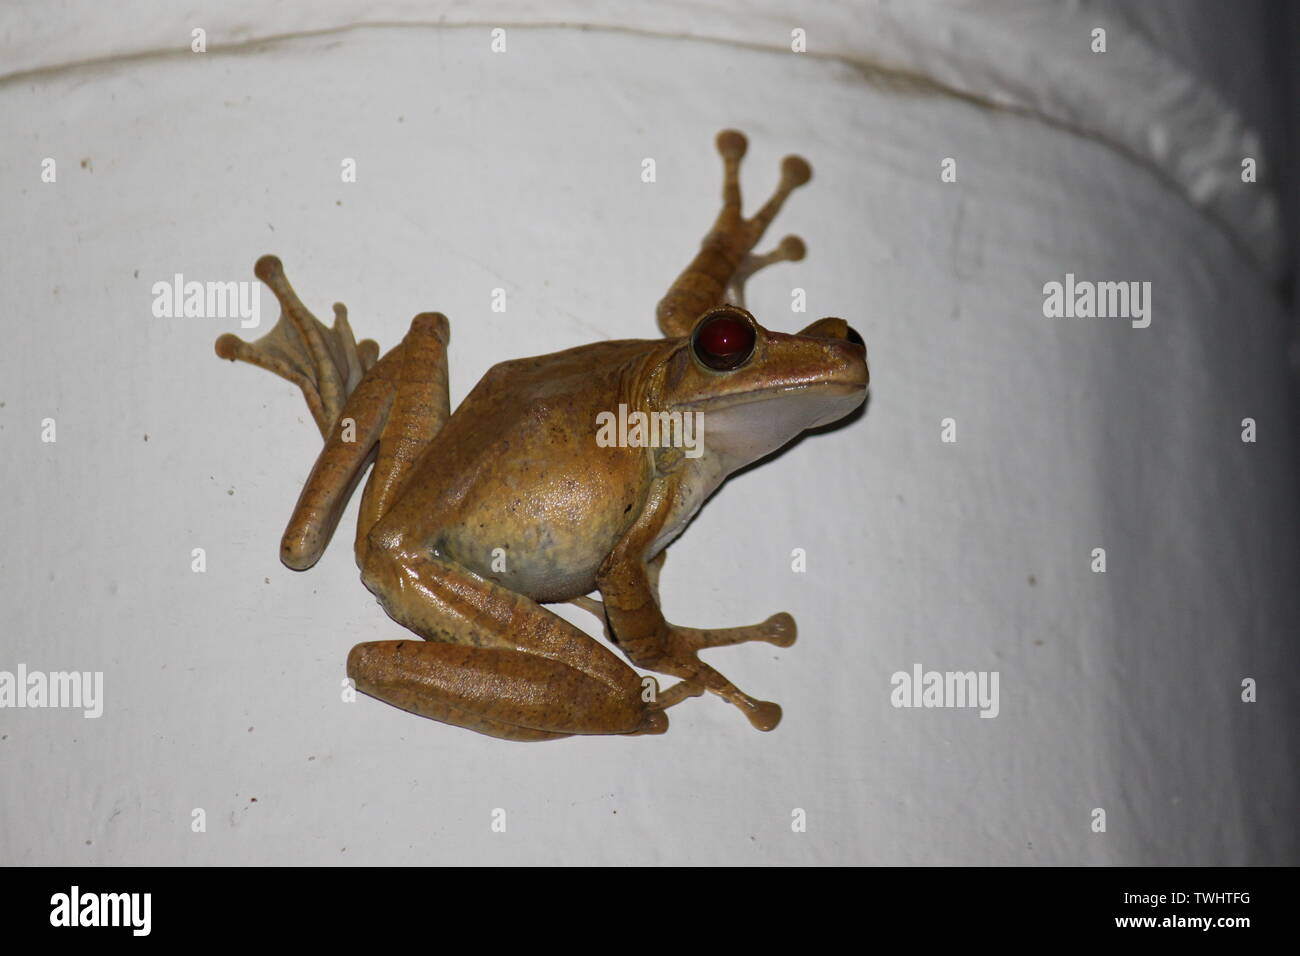 Common Indian tree frog photographed in Sri Lanka - Stock Image